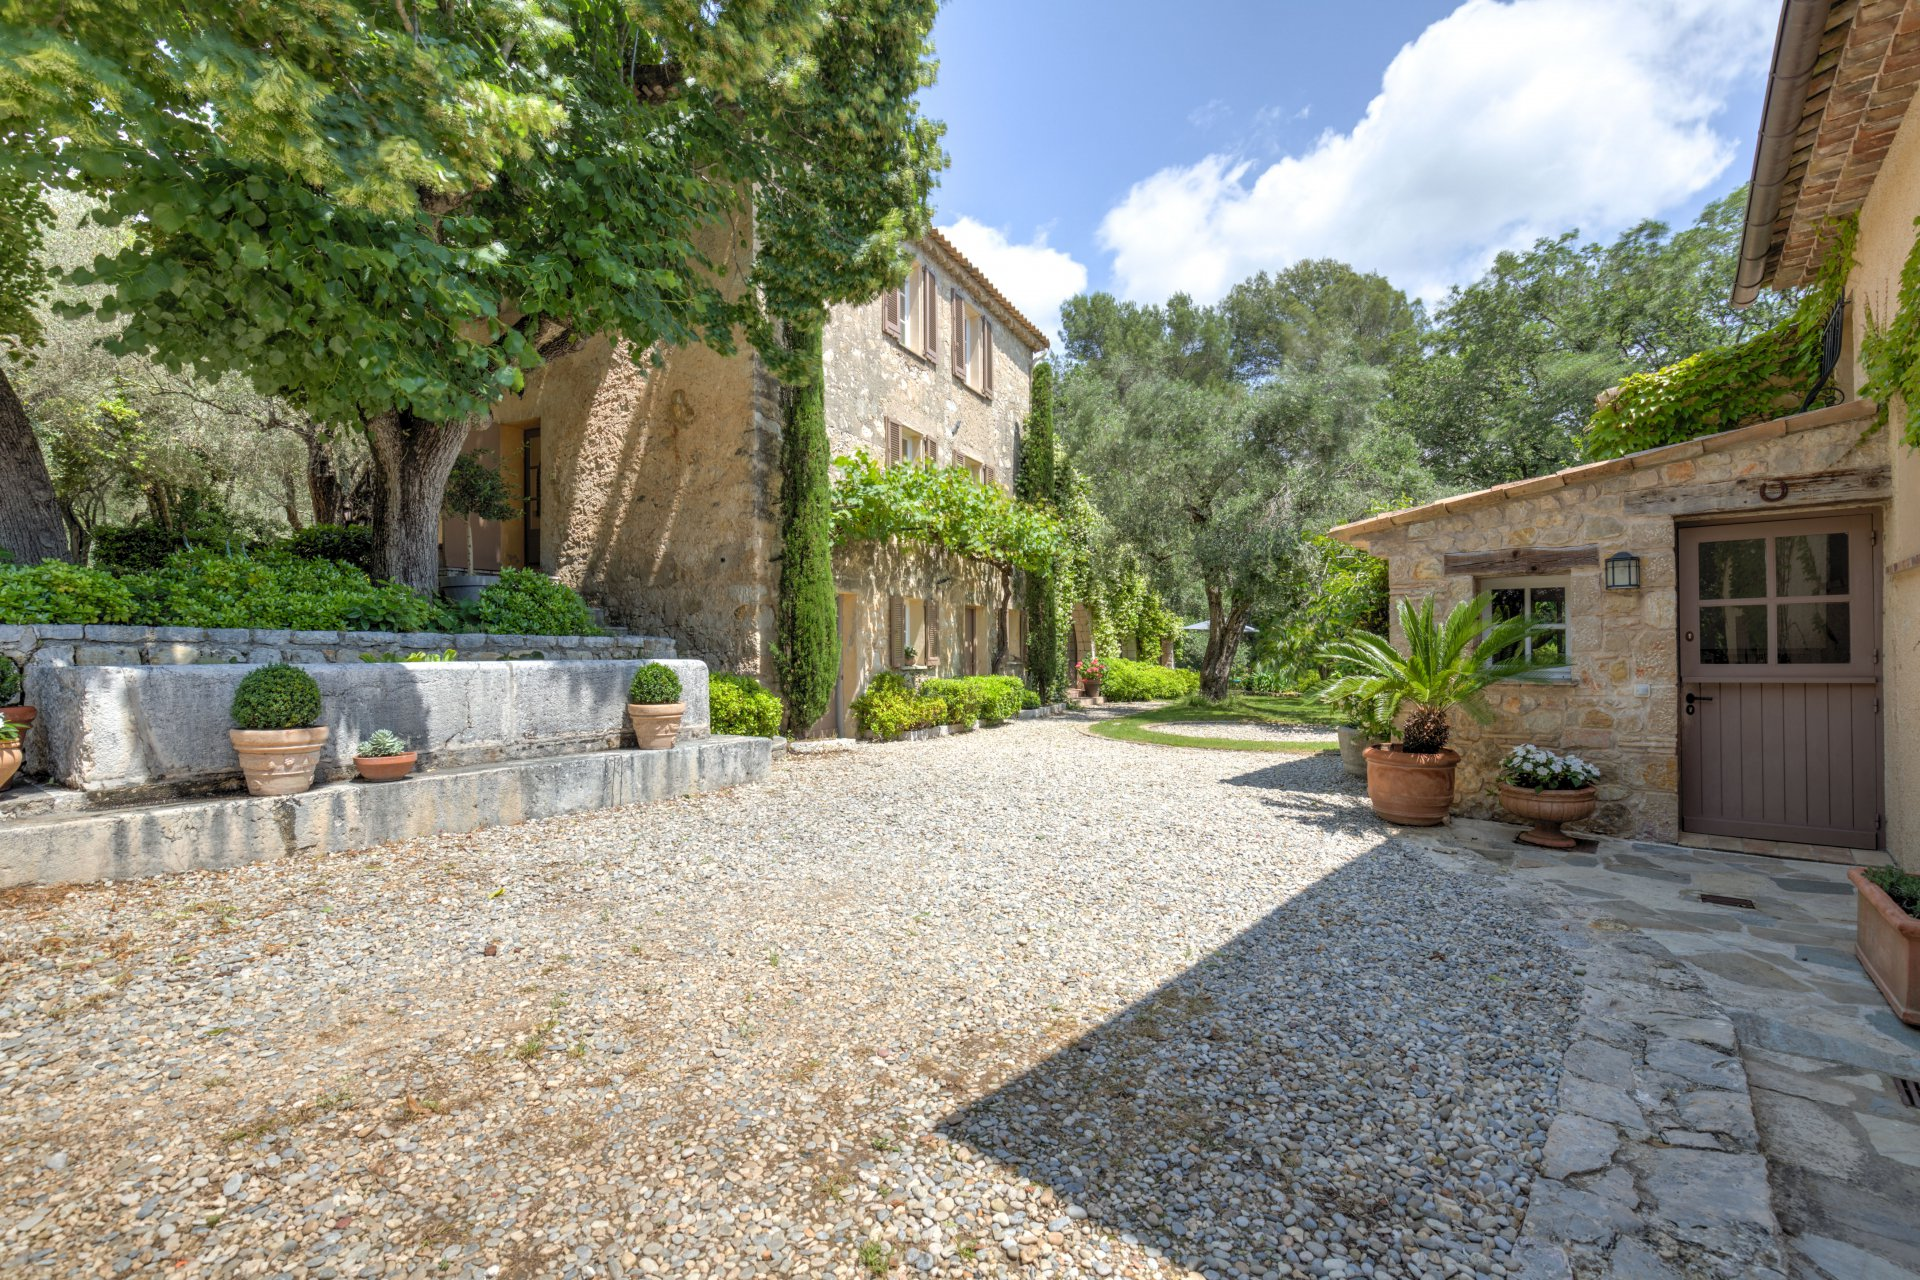 VALBONNE : Sole Agent : 2 hectares country side estate with olive grove